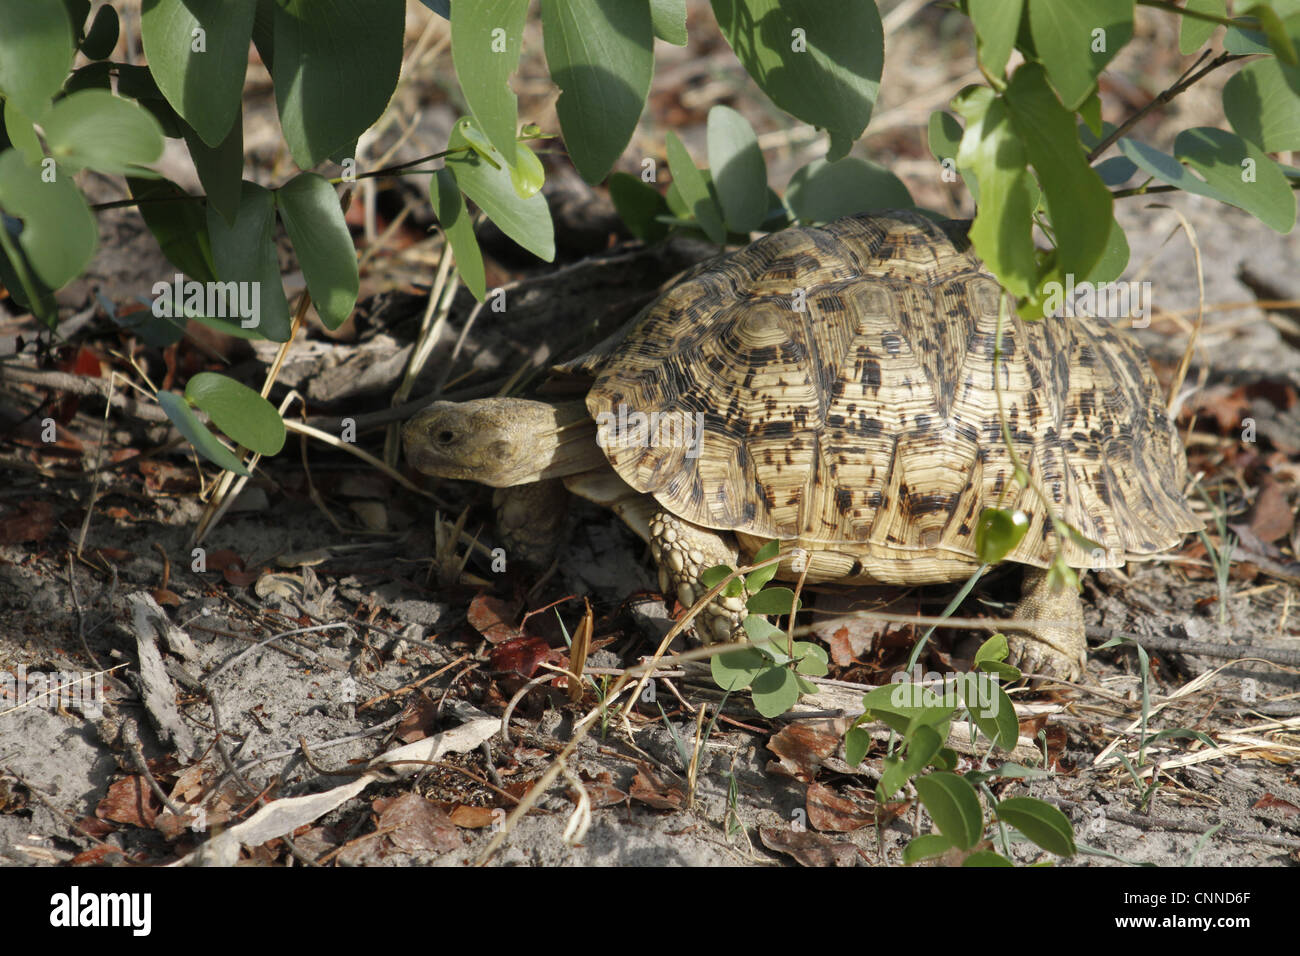 Leopard or Mountain Tortoise a very common species in southern Africa - Stock Image